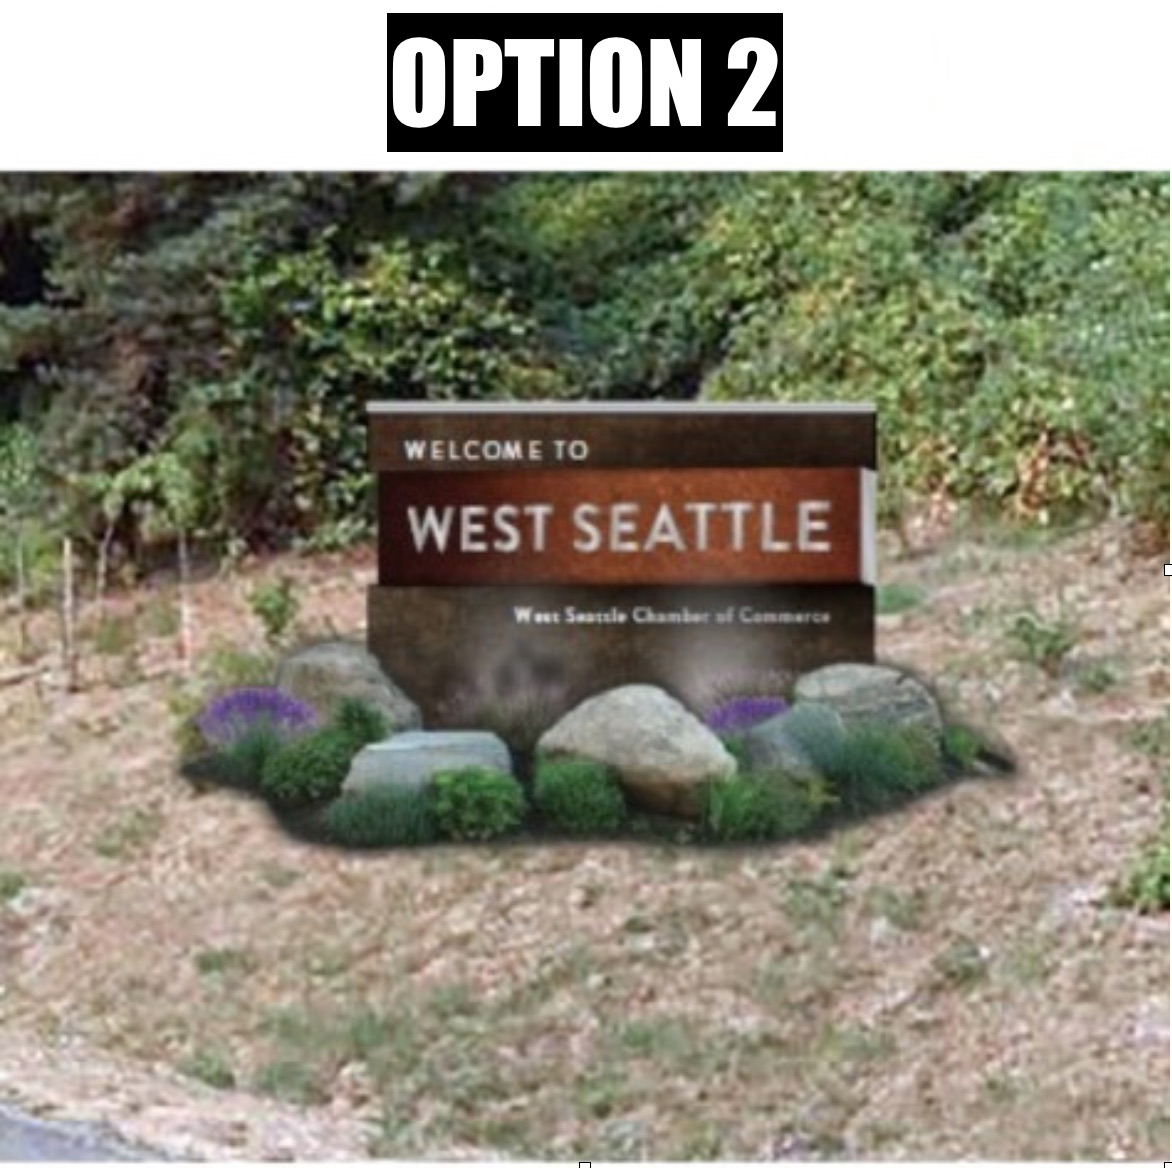 New West Seattle sign Option 2